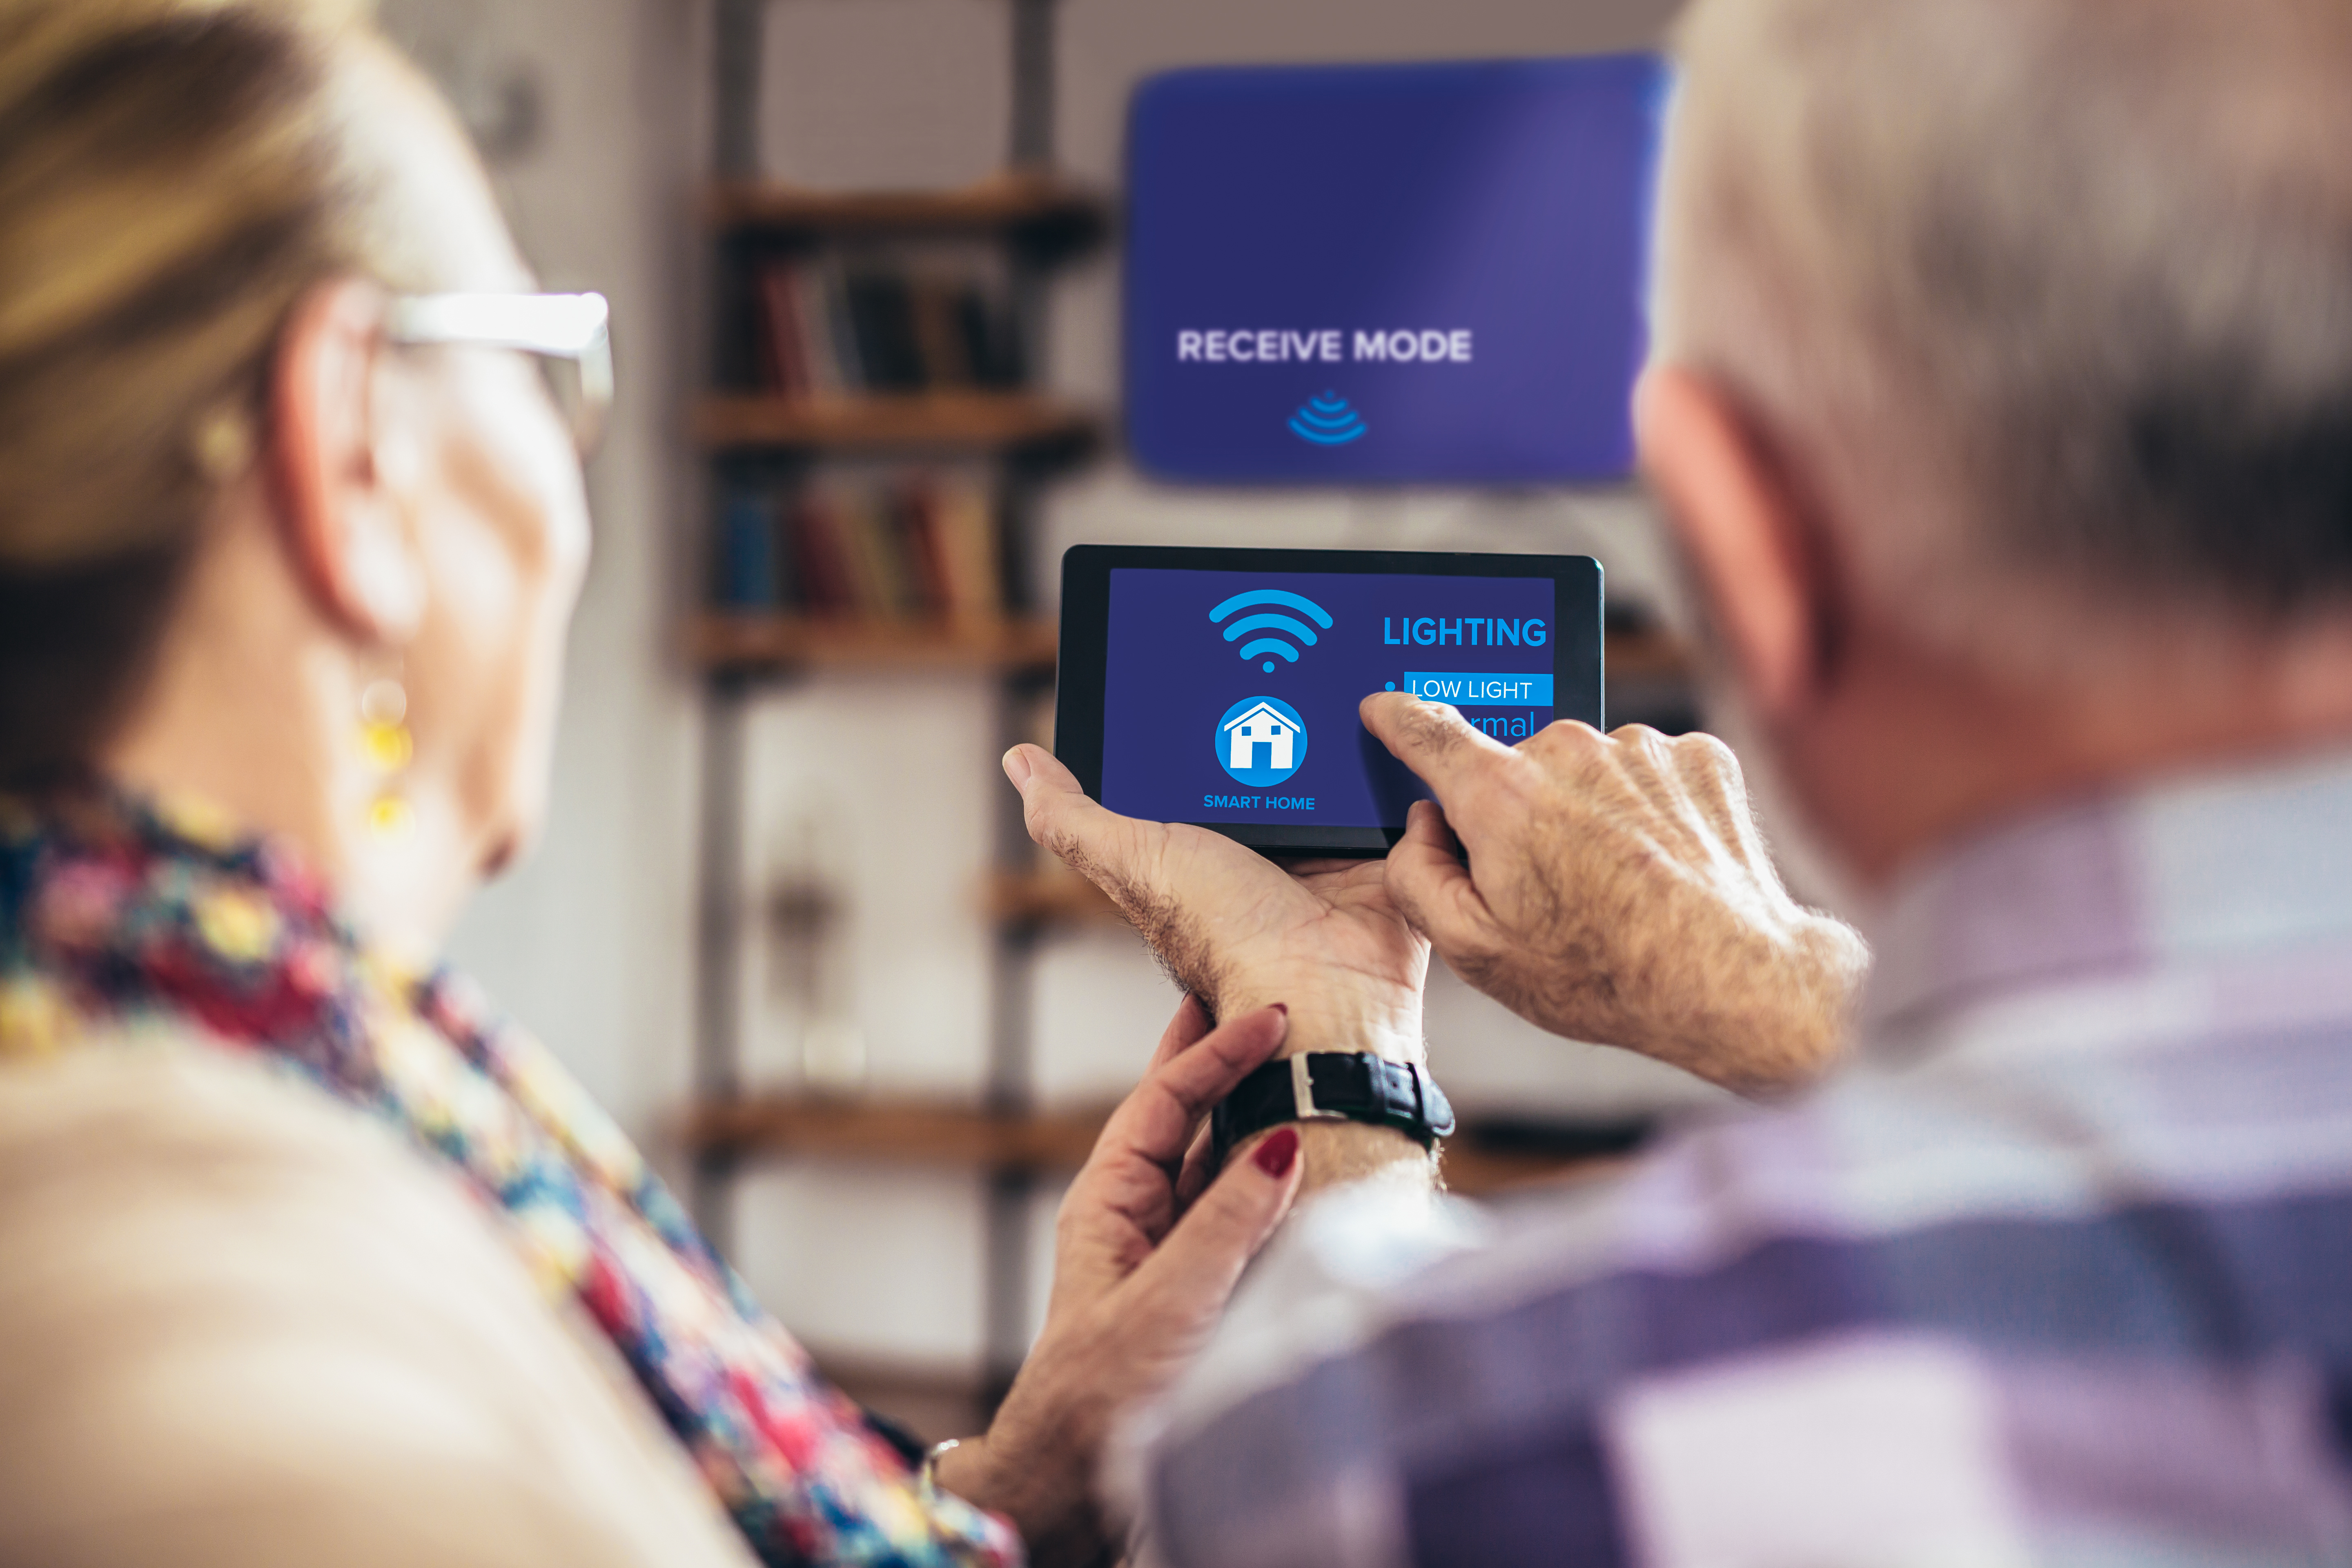 4 In-home Technology Tips for Seniors